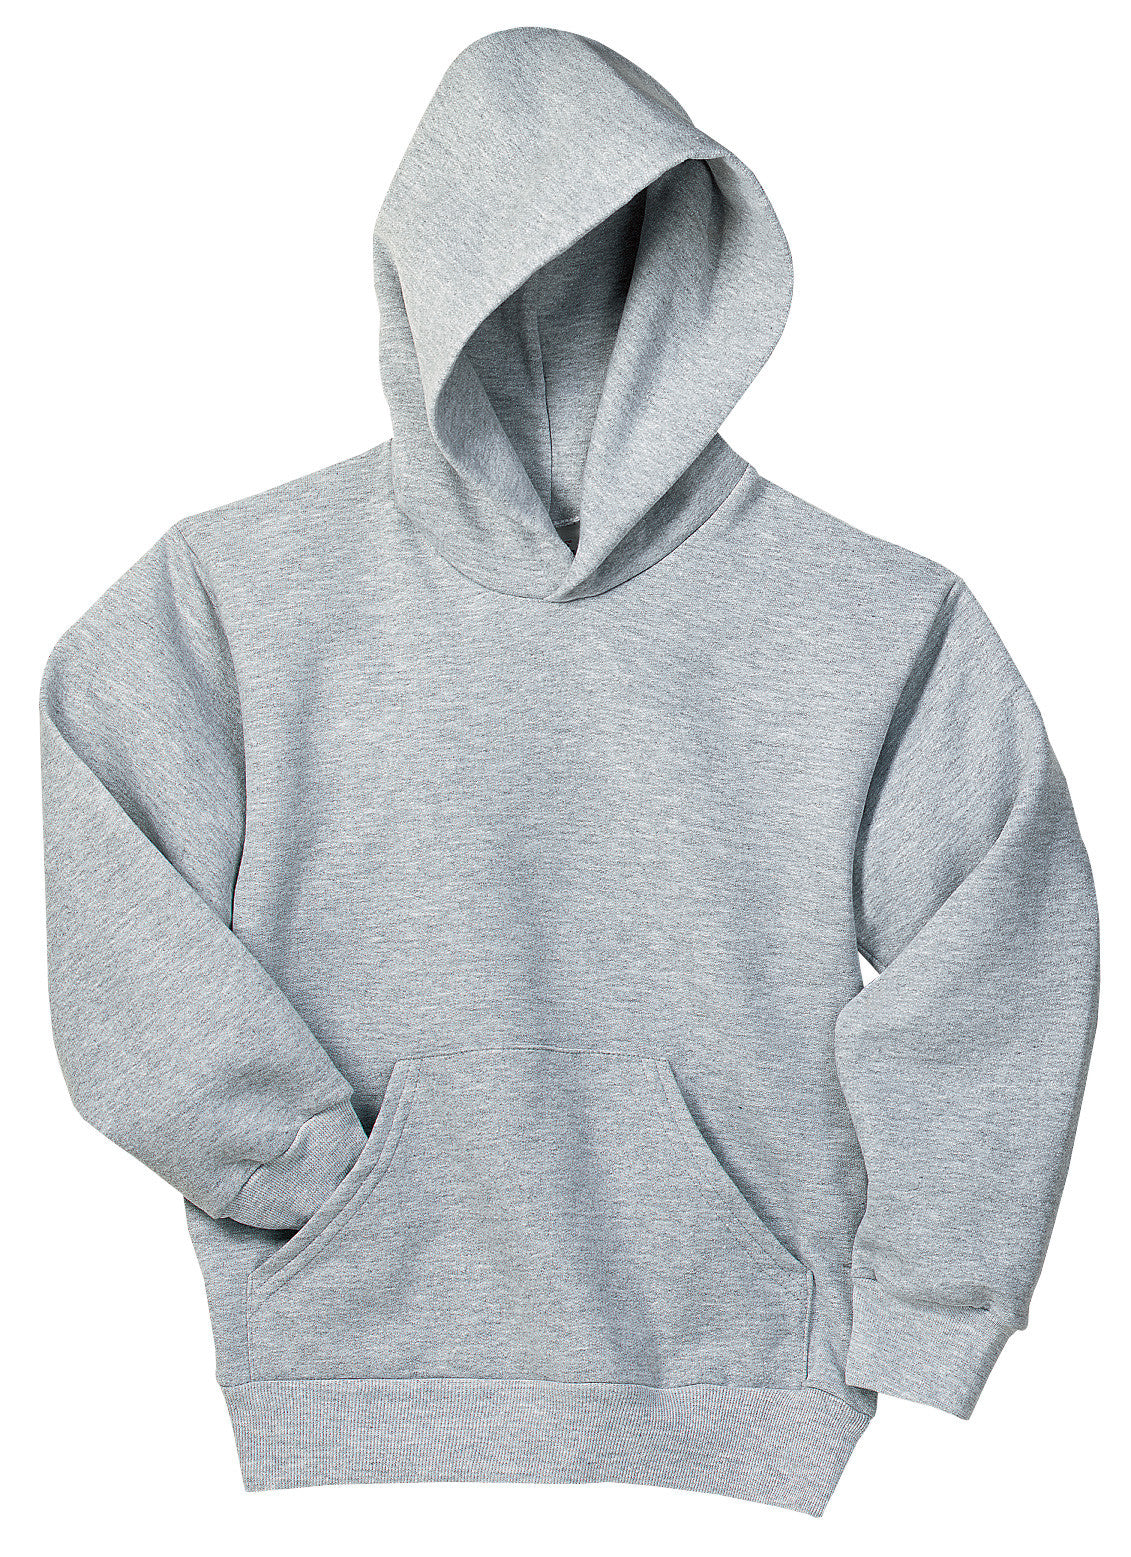 a9720f205d4 Hanes Youth Comfortblend EcoSmart Pullover Hooded Sweatshirt P470 ...